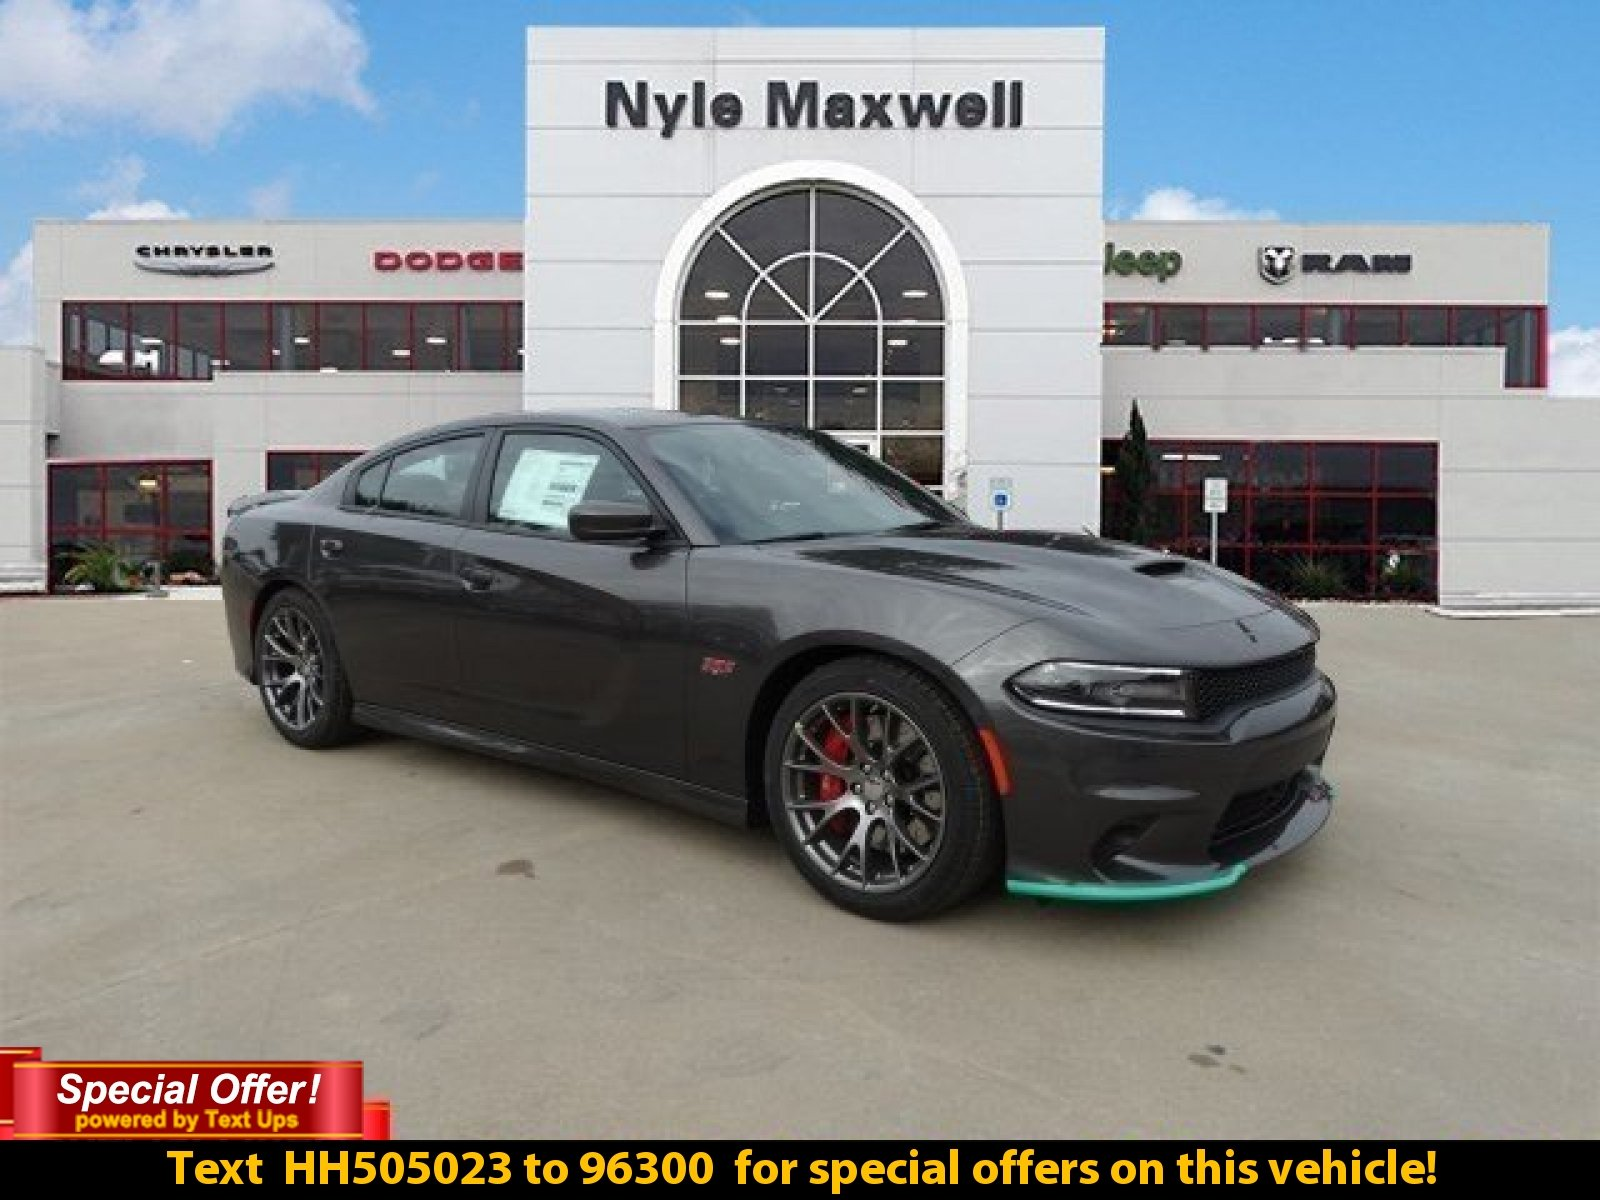 new 2017 dodge charger srt 392 sedan in austin hh505023 nyle maxwell chrysler dodge jeep ram. Black Bedroom Furniture Sets. Home Design Ideas